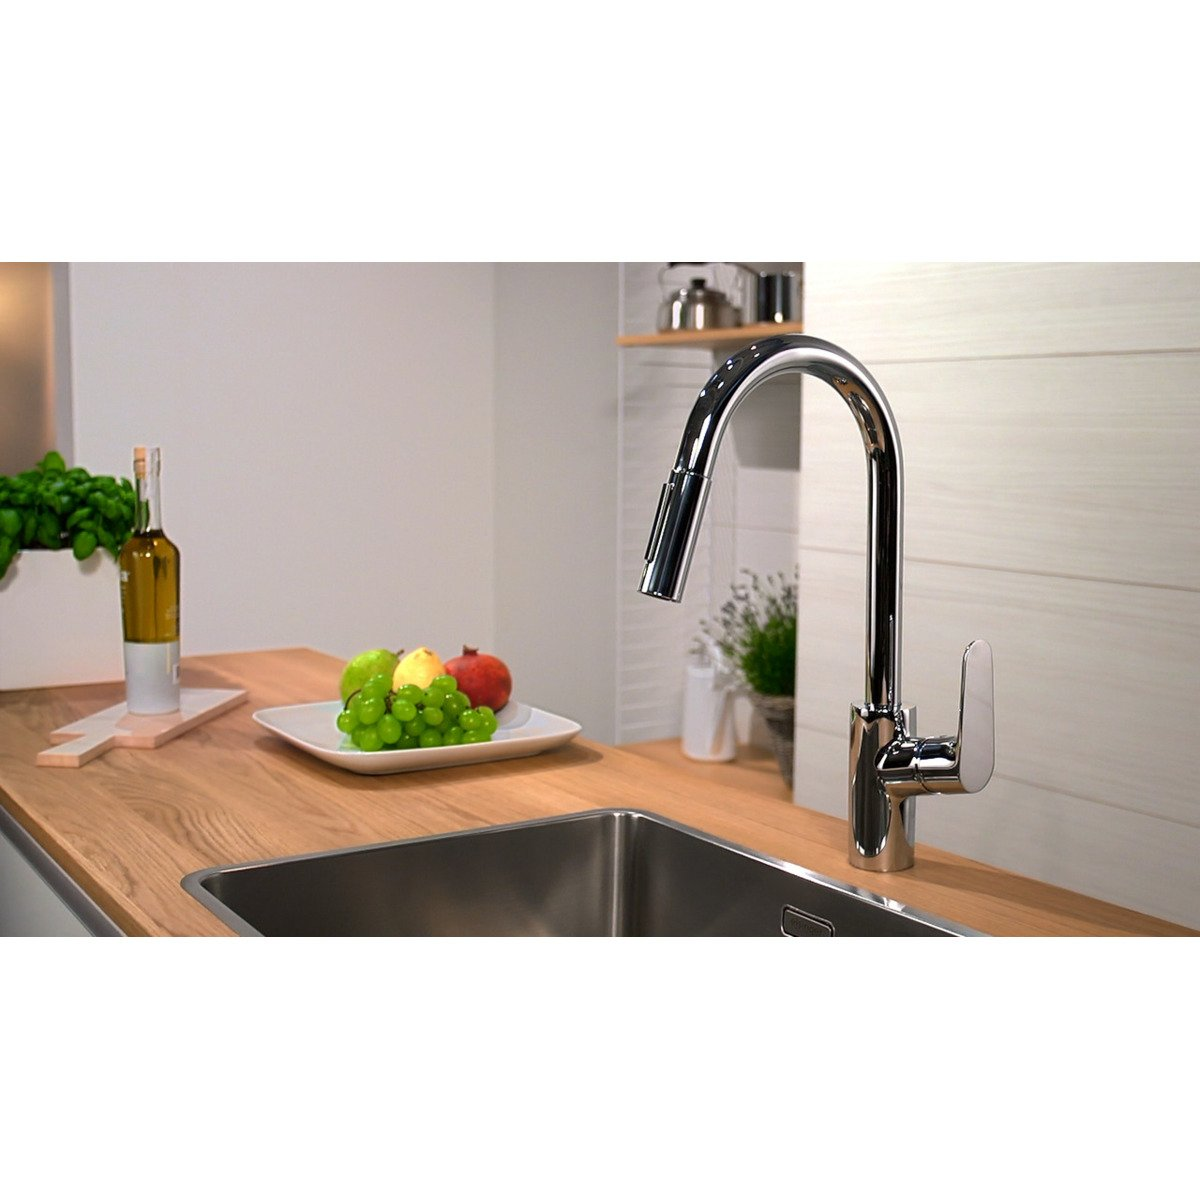 hansgrohe focus robinet de cuisine avec mousseur extractible look inox 31815800. Black Bedroom Furniture Sets. Home Design Ideas